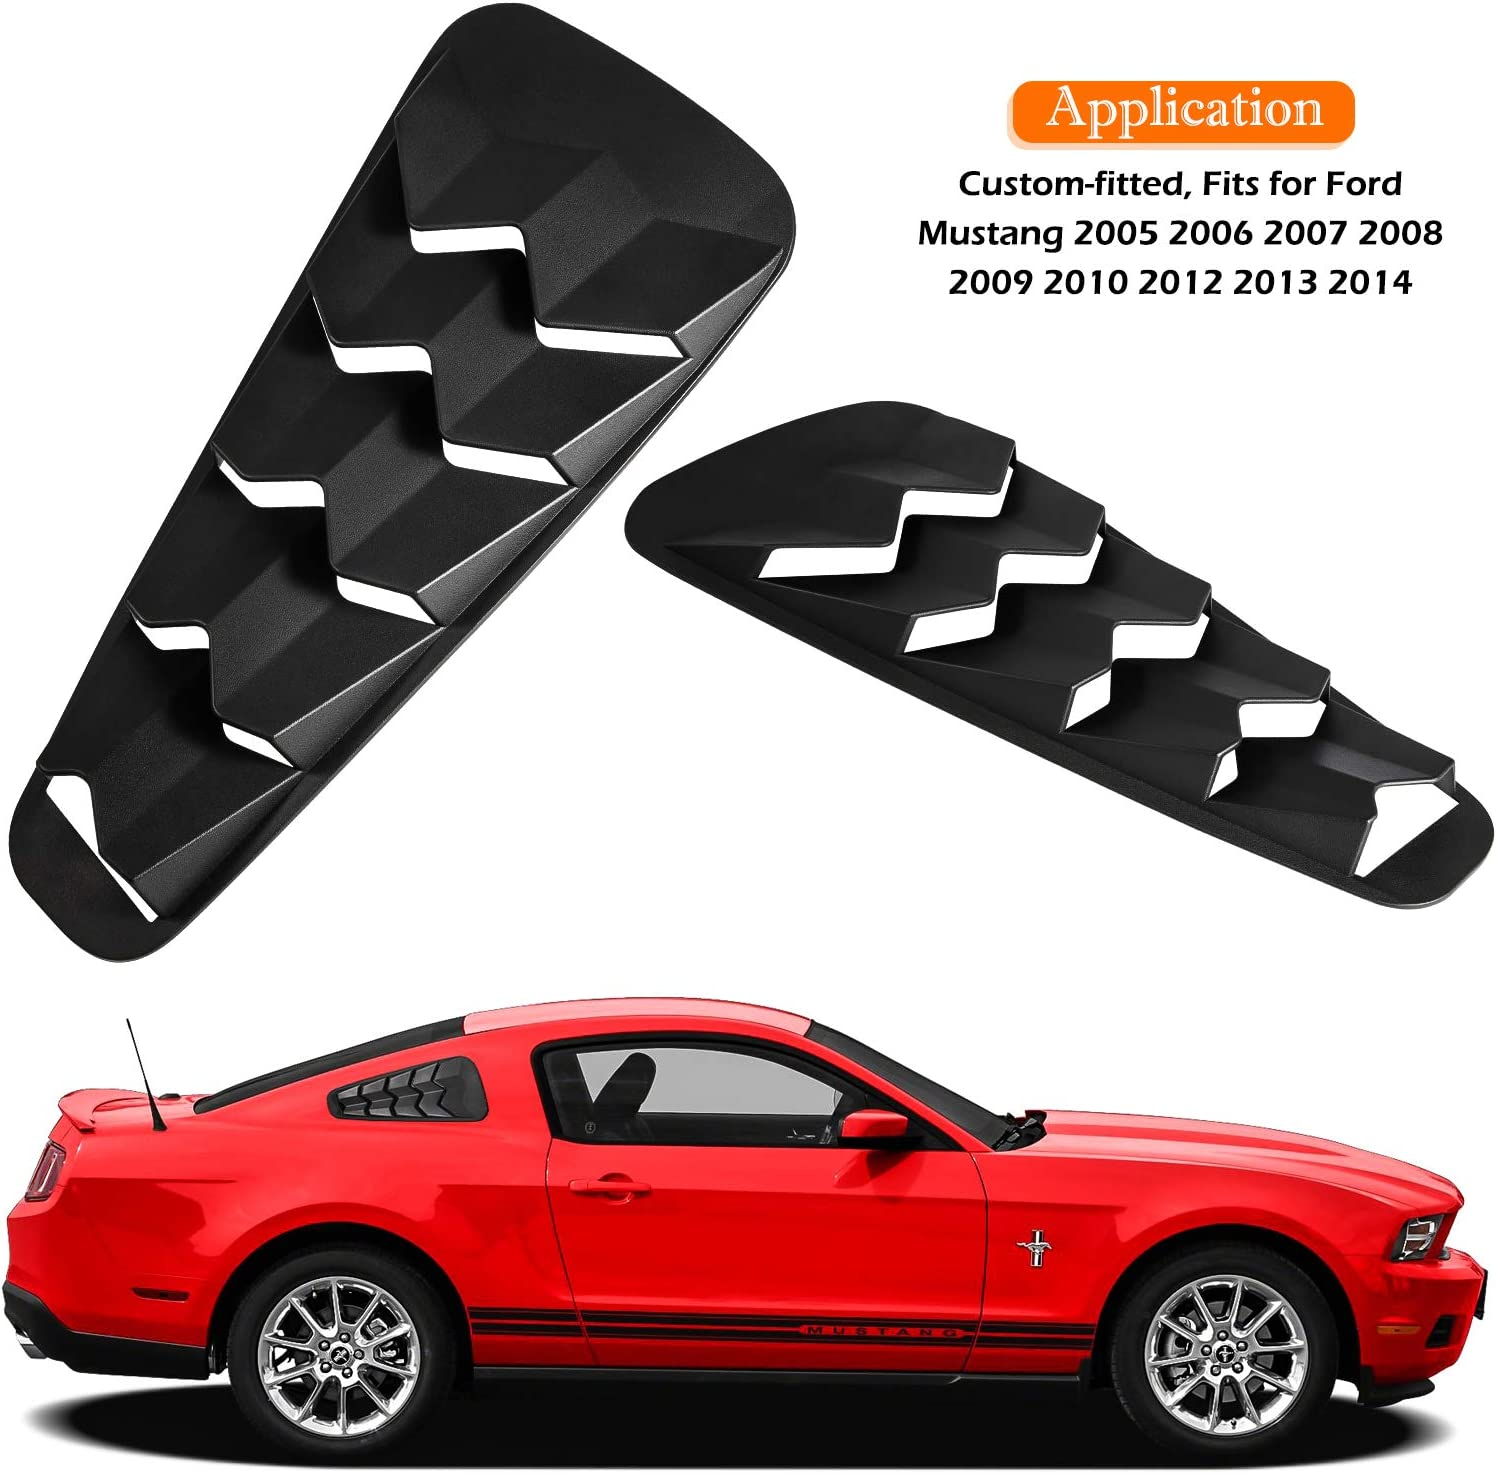 Rear Window Louvers and Quarter Side Window Scoop Louvers in GT Lambo Style Matte Black ABS Fits for Ford Mustang 2005 2006 2007 2008 2009 2010 2012 2013 2014